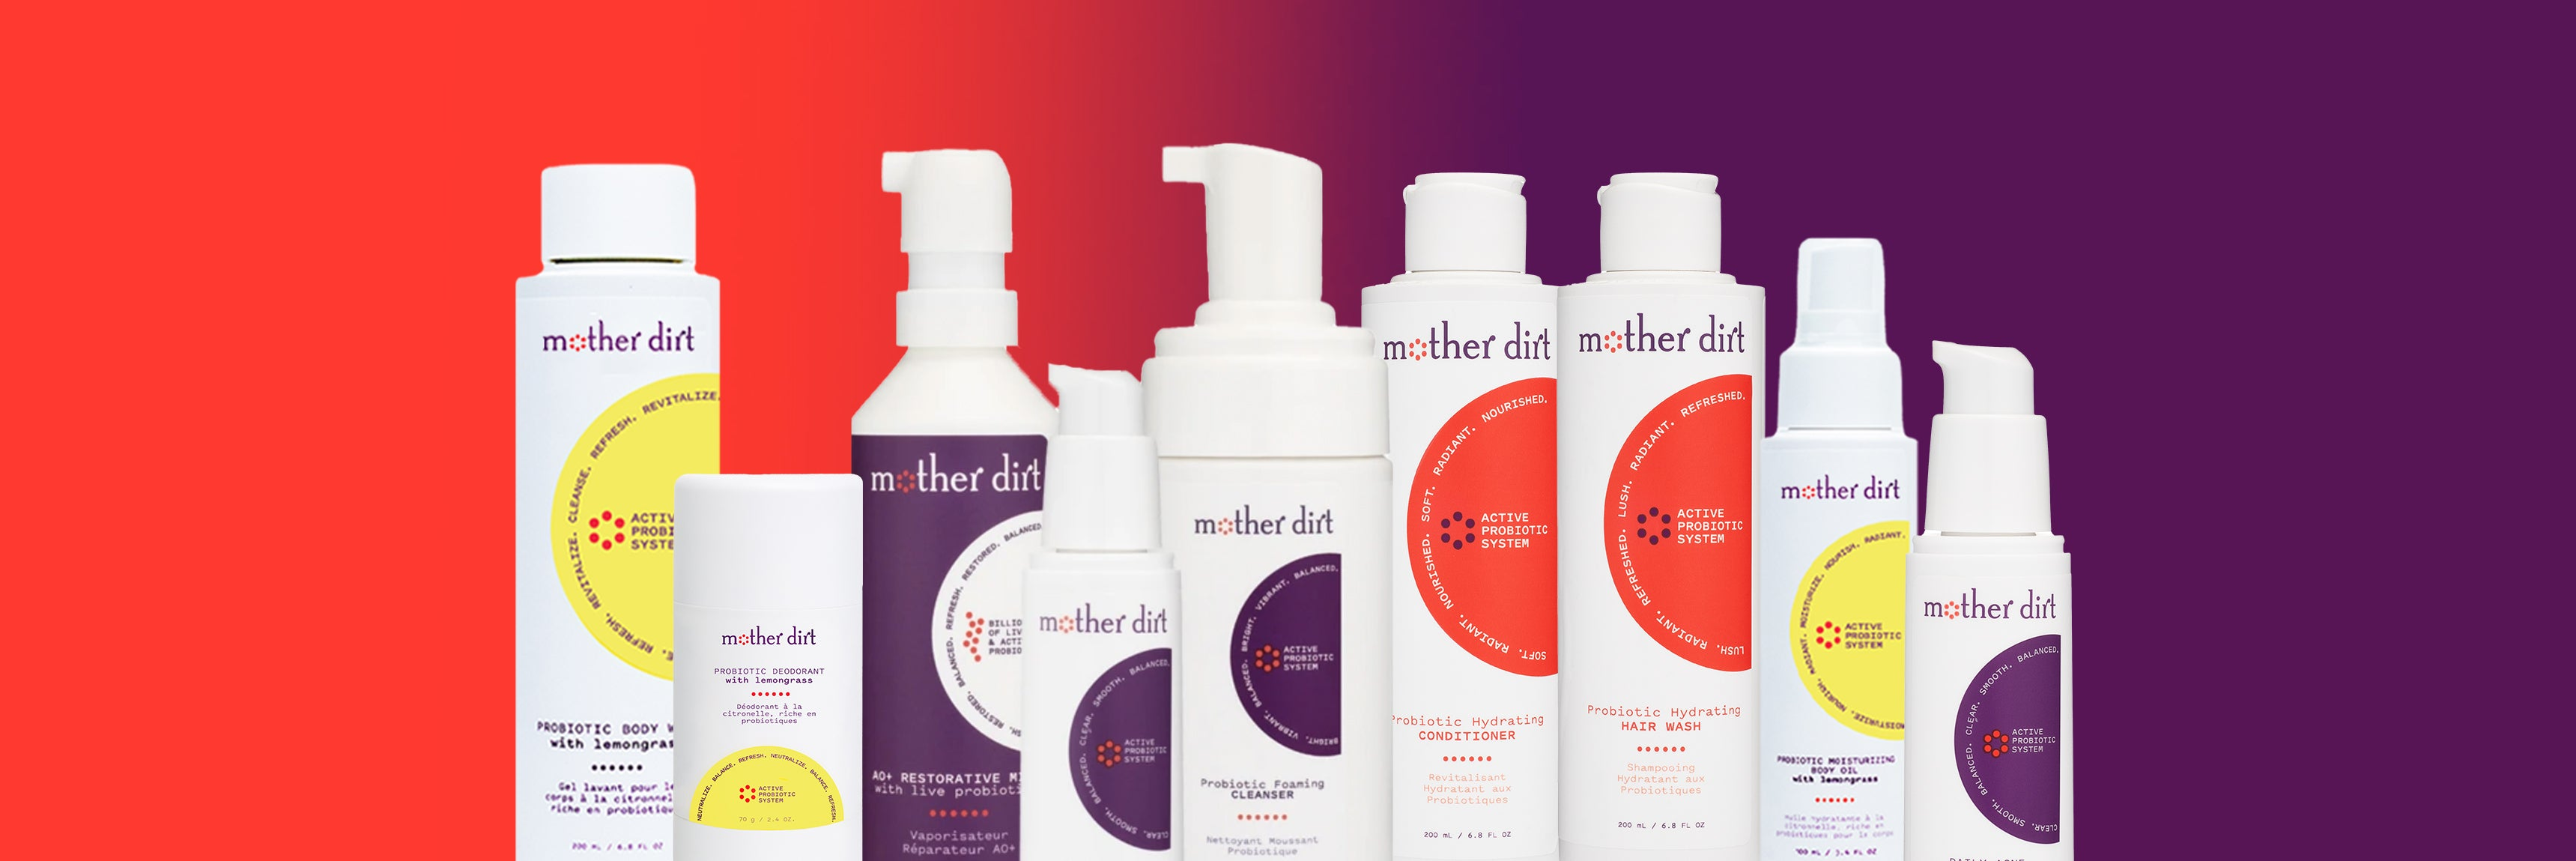 array of mother dirt products over gradient background